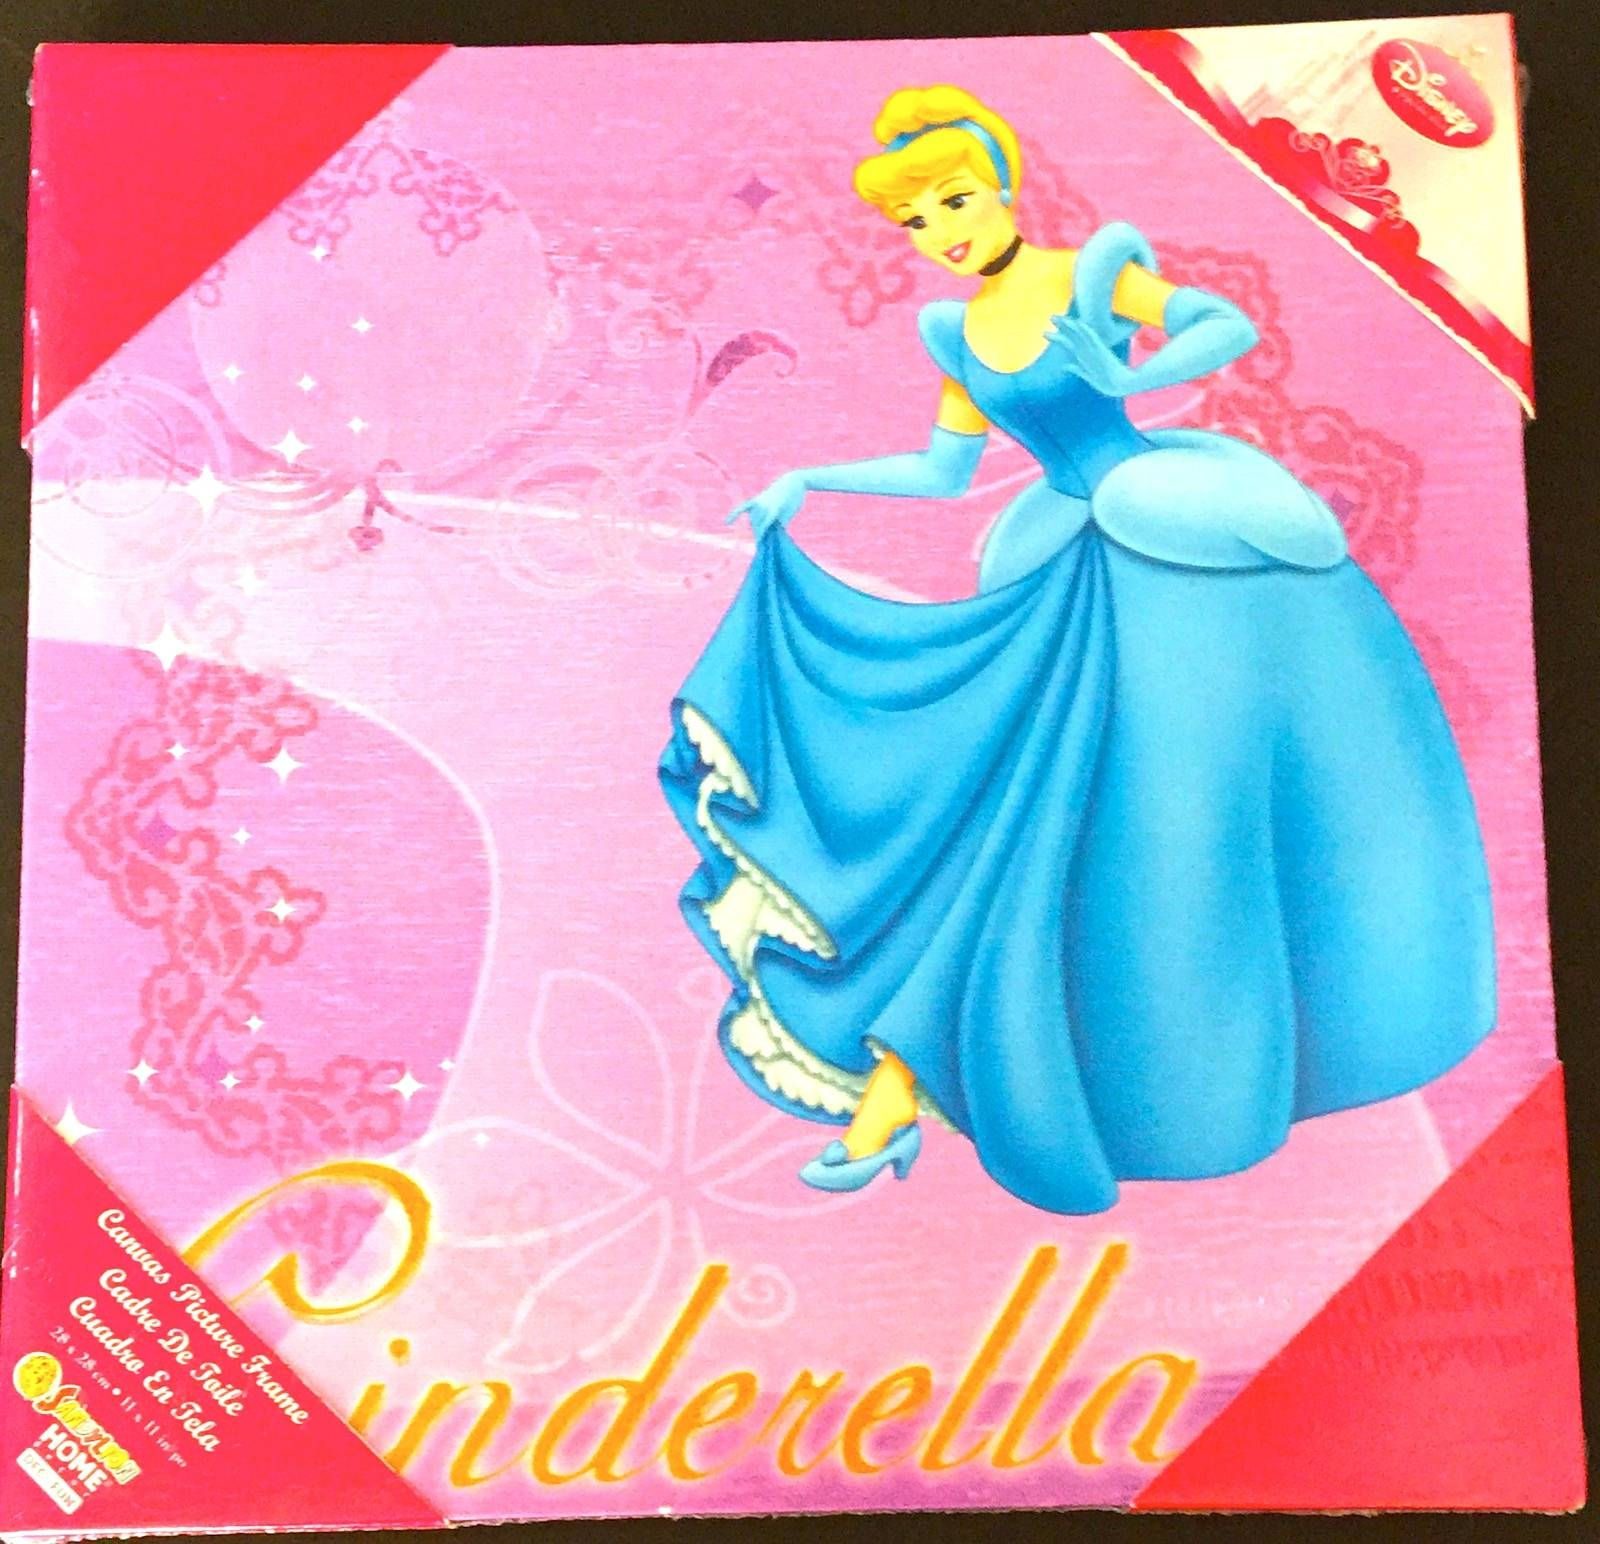 Disney's Princess Cinderella Decorative Wall Art Canvas Inside Best And Newest Princess Canvas Wall Art (View 10 of 20)